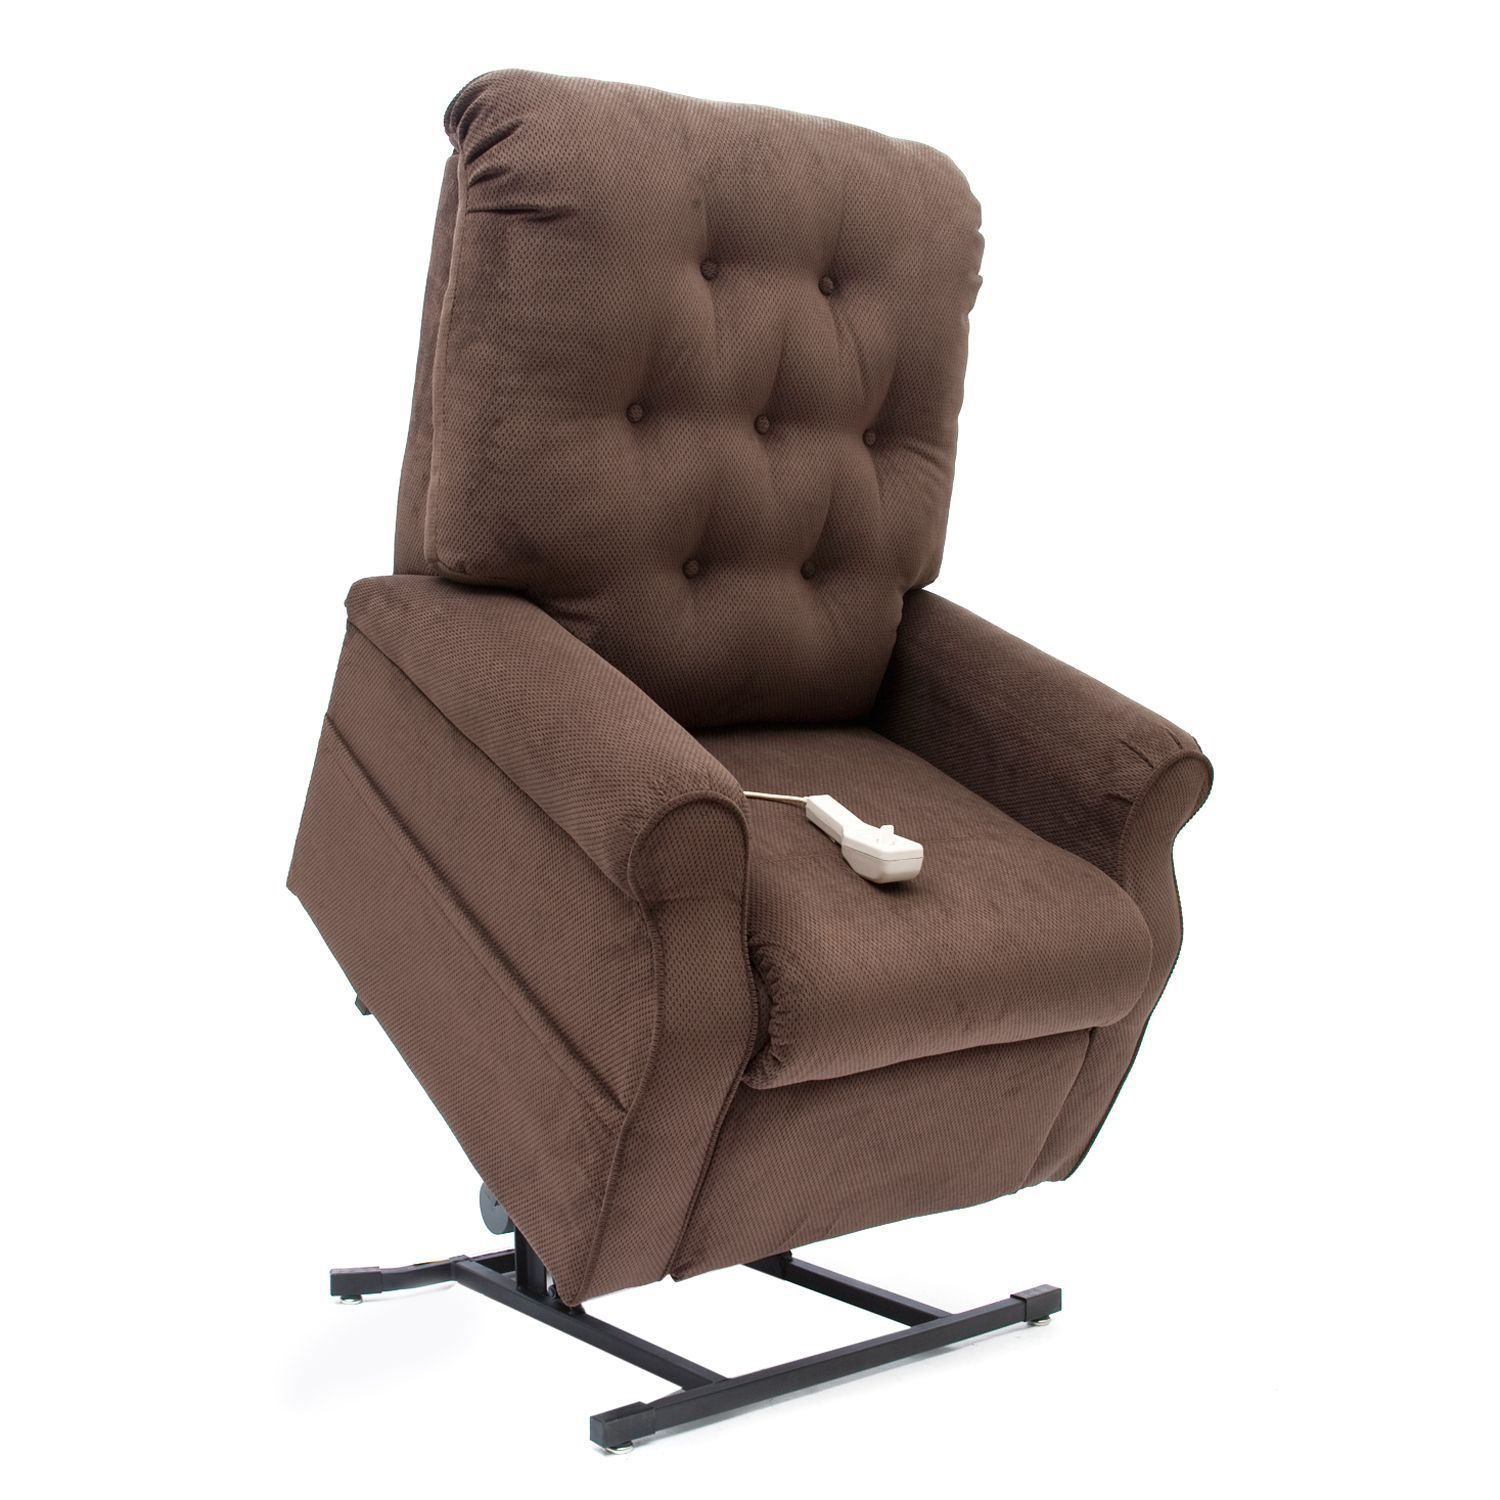 Explore Samu0027s Club, Recliners, And More! Used Power Chair Lifts